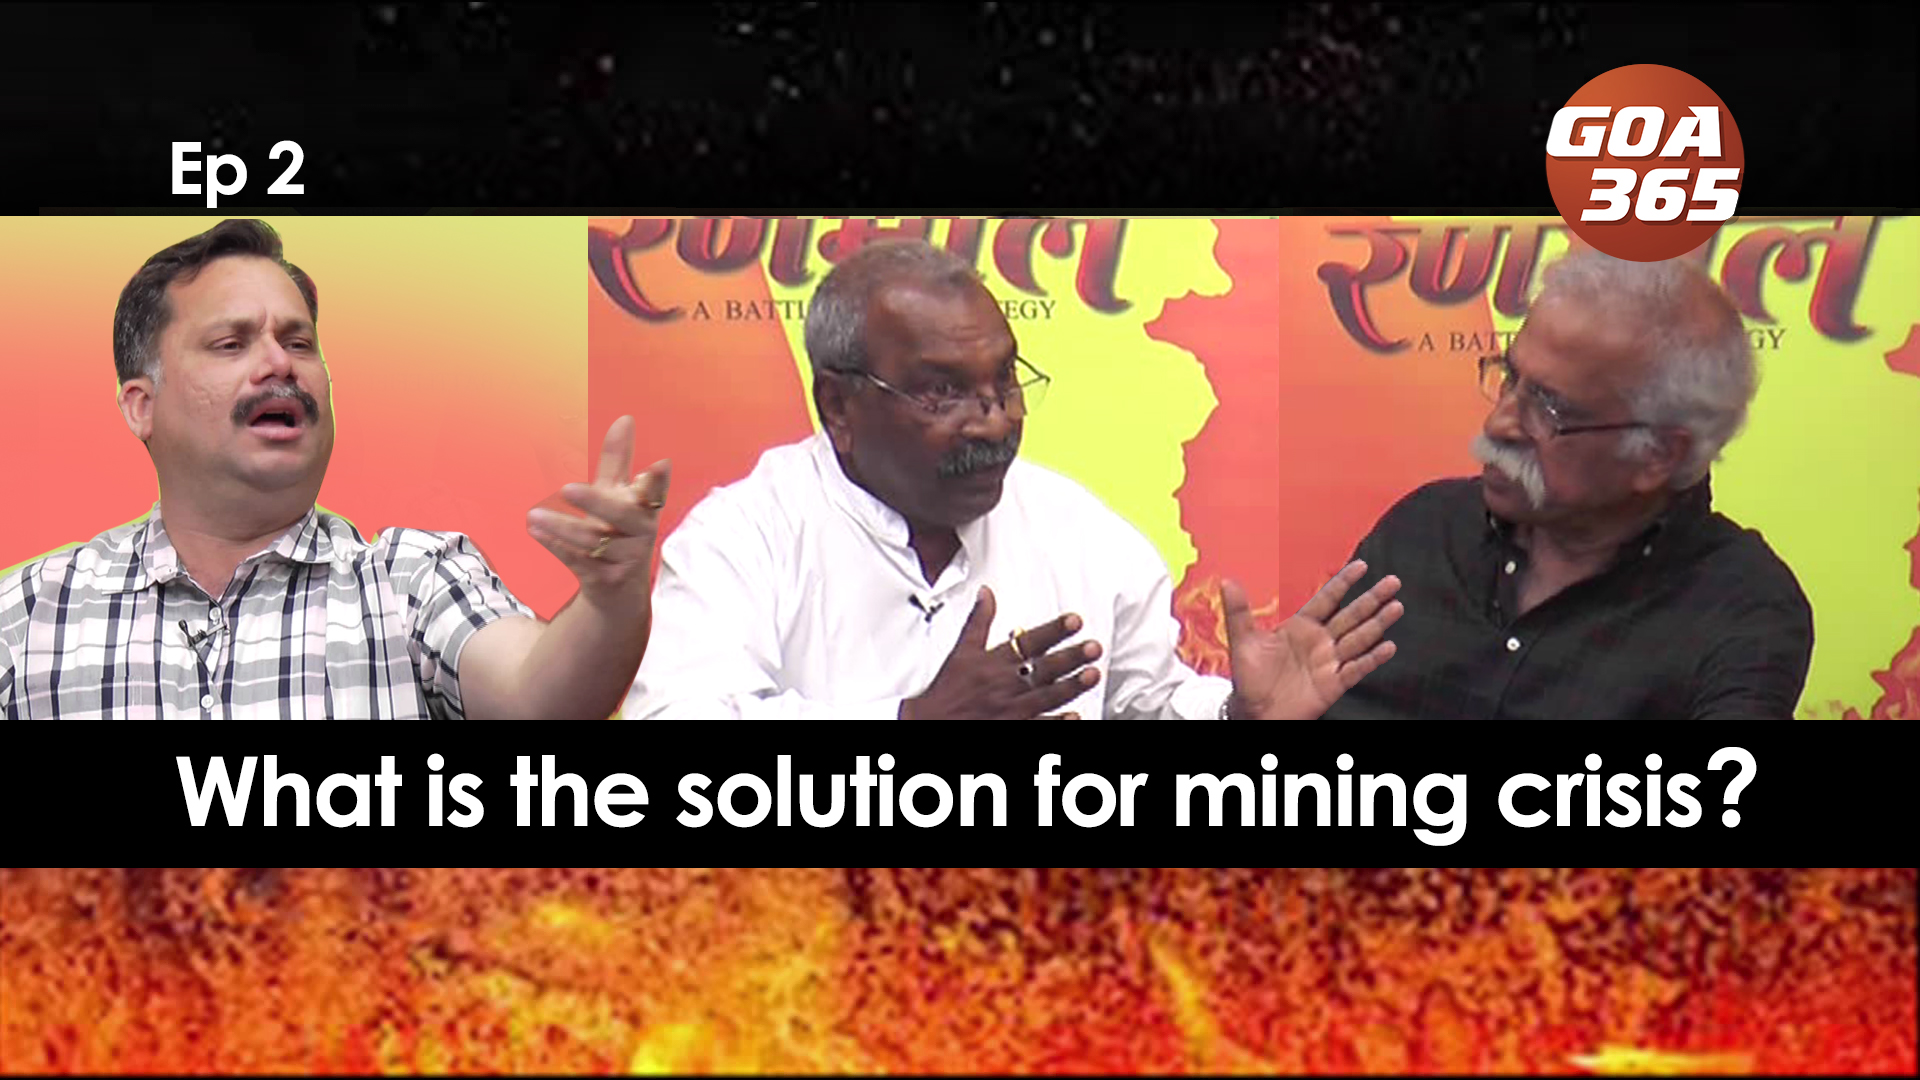 'WHAT'S THE SOLUTION FOR MINING CRISIS?: